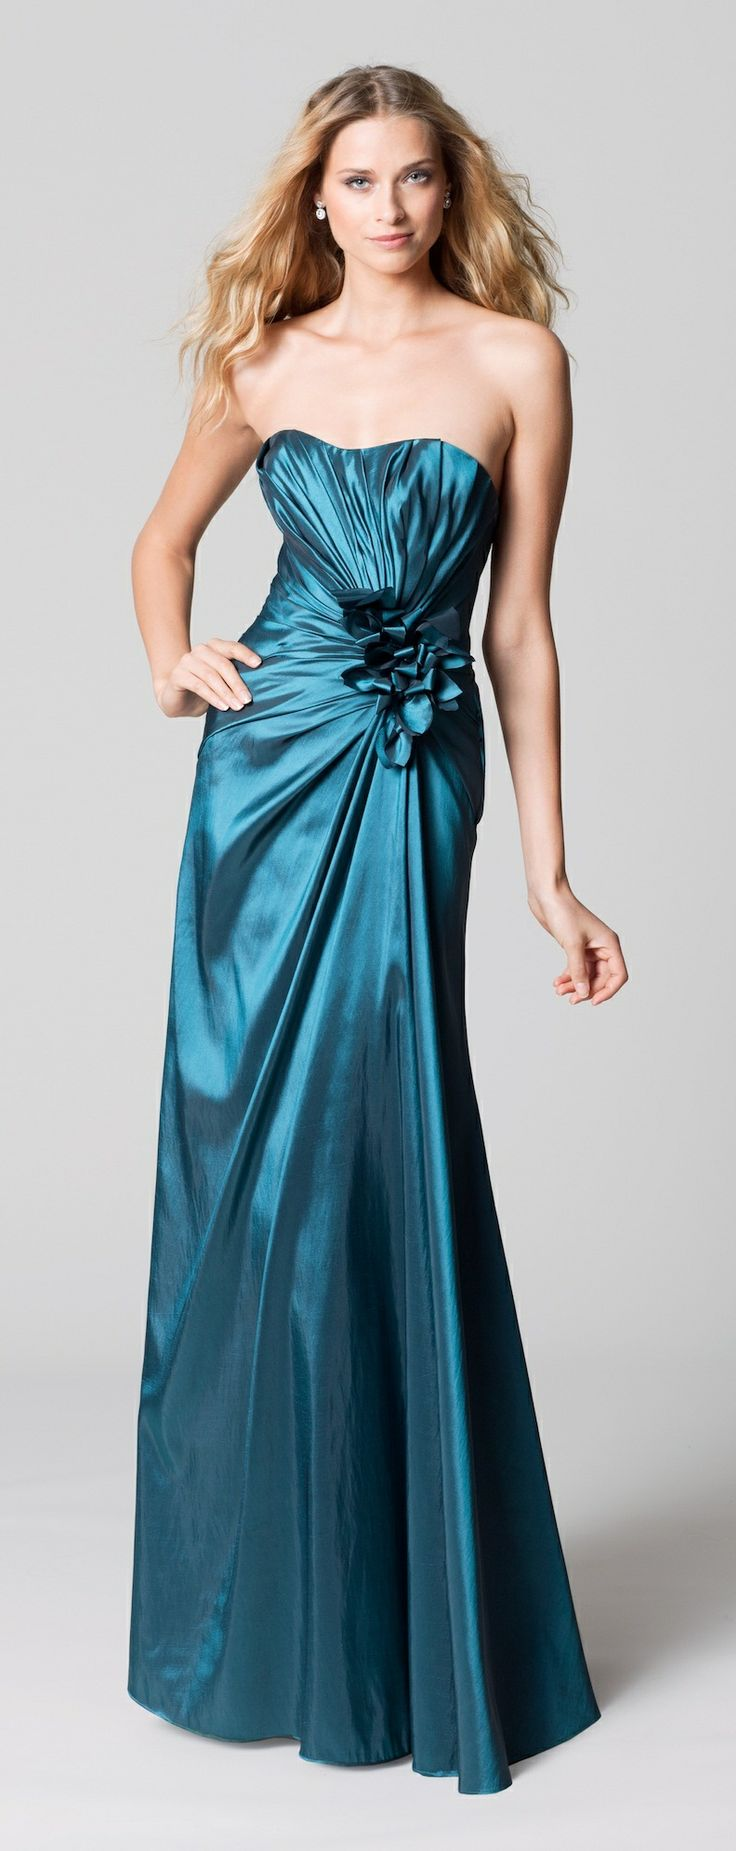 14 best Gray/Silver Bridesmaid Dresses images on Pinterest | Bridal ...